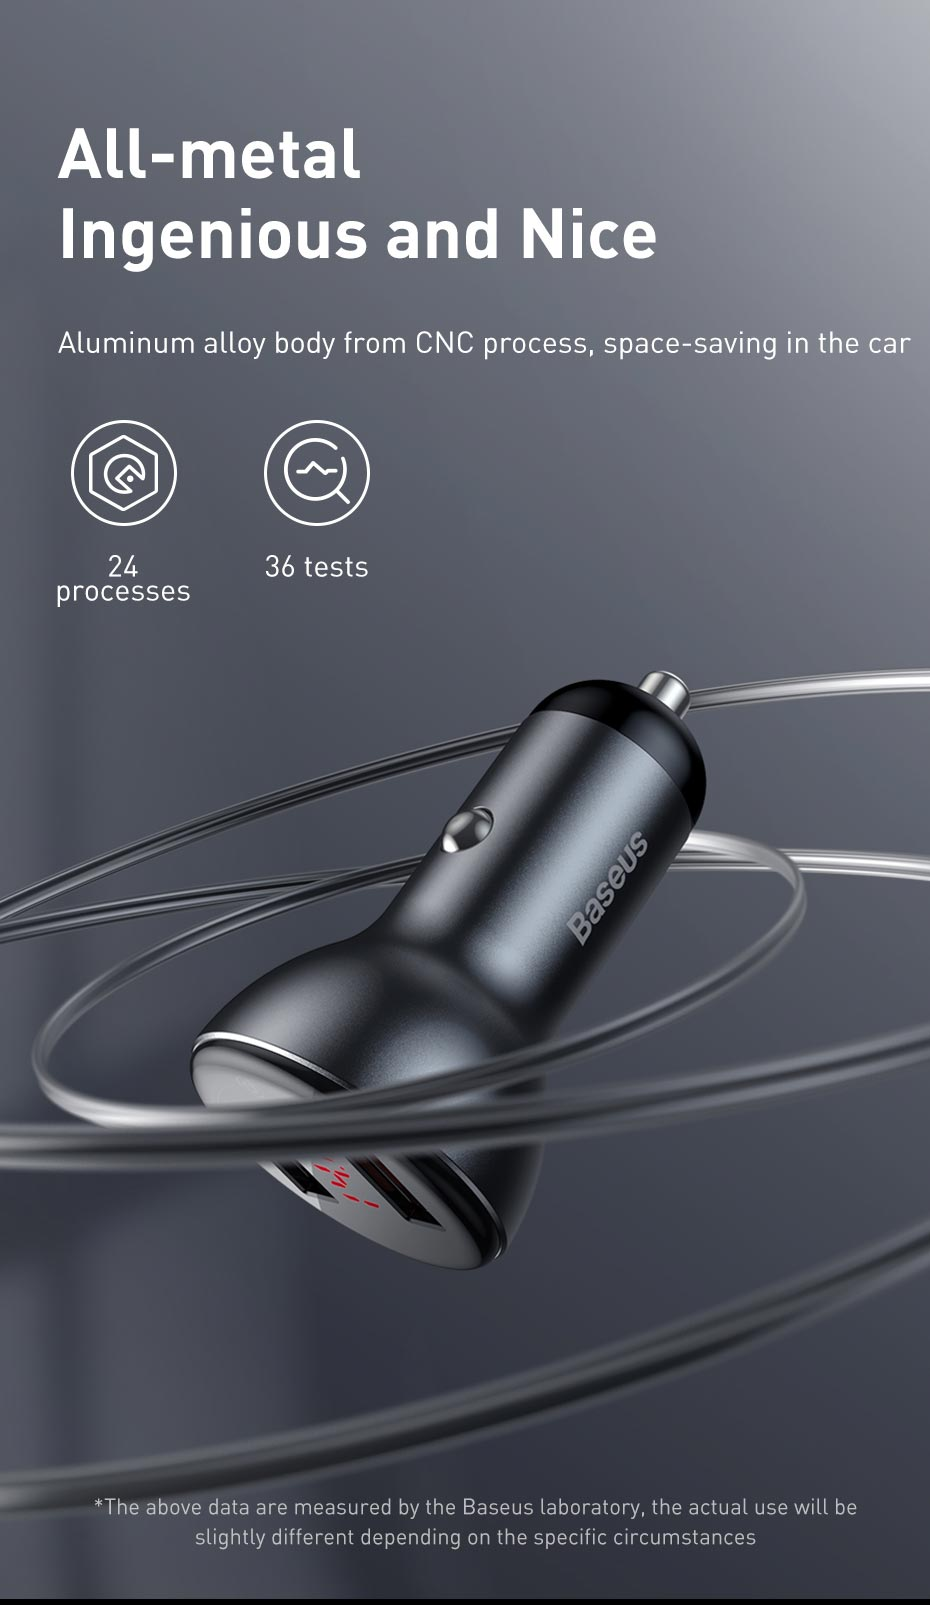 Baseus 45w Quick Charge 4 0 Usb Car Charger For Samsung Xiaomi 10 Qc 4 0 3 0 Pd 3 0 Fast Car Charging For Phone Car Charger Al In 2020 Car Usb Charger Car Fast Cars